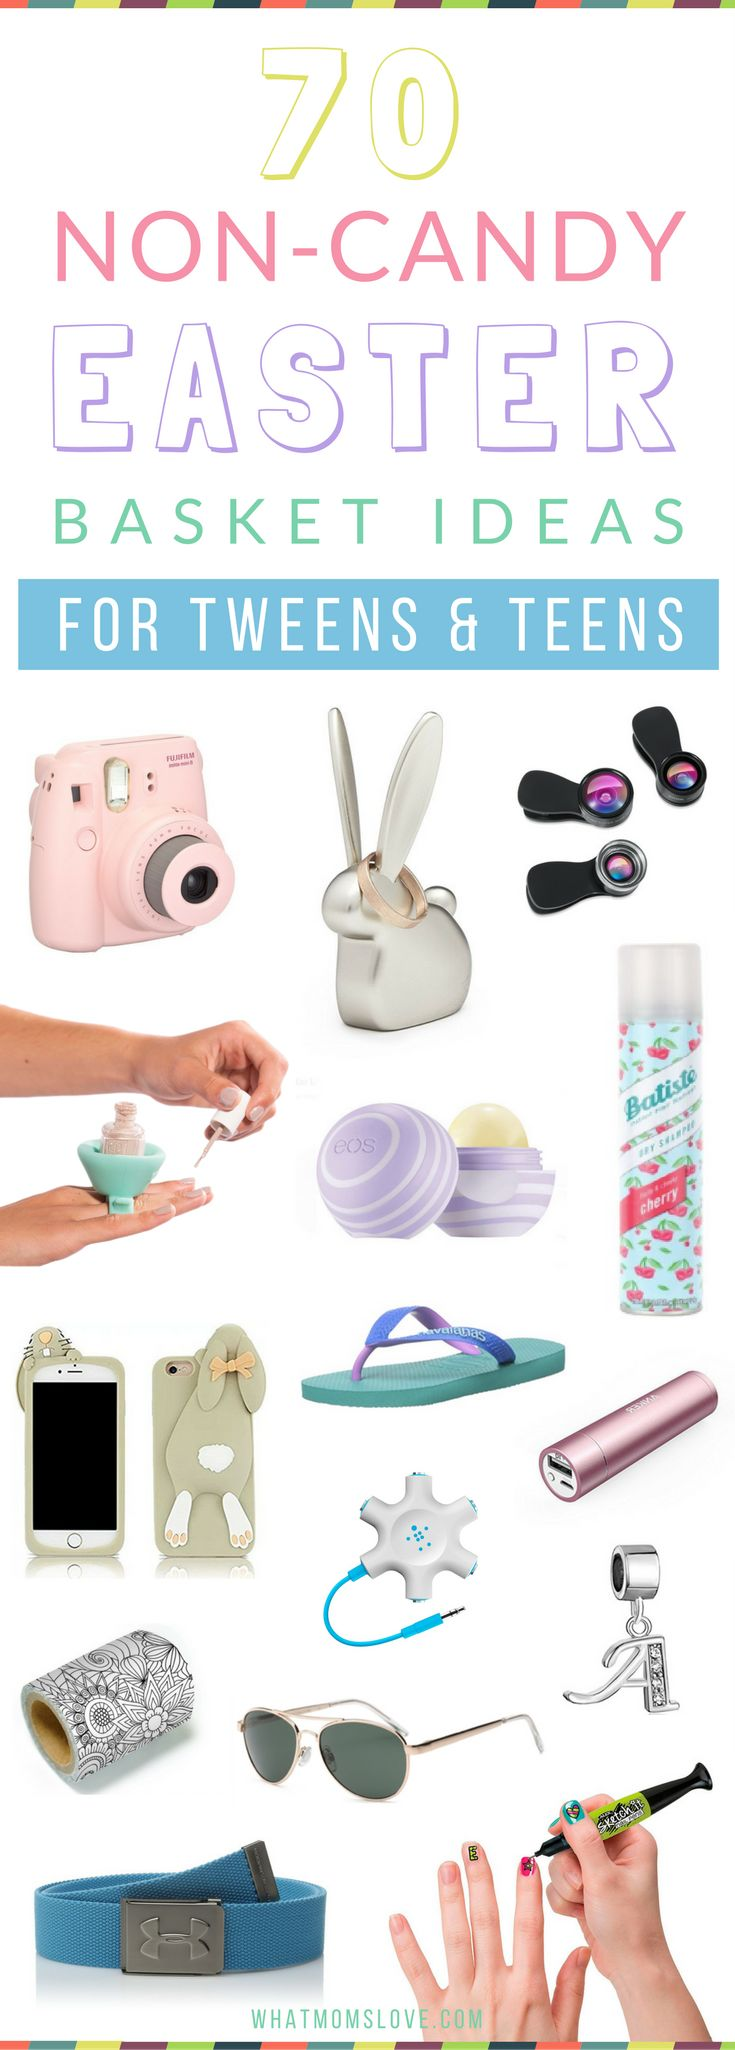 Non Candy Easter Basket Ideas for Tweens and Teens   Includes unique and creative tech gifts, useful items, games, beauty, fashion and more! Great for those hard to buy for teenage girls and boys! Check out the full list at whatmomslove.com